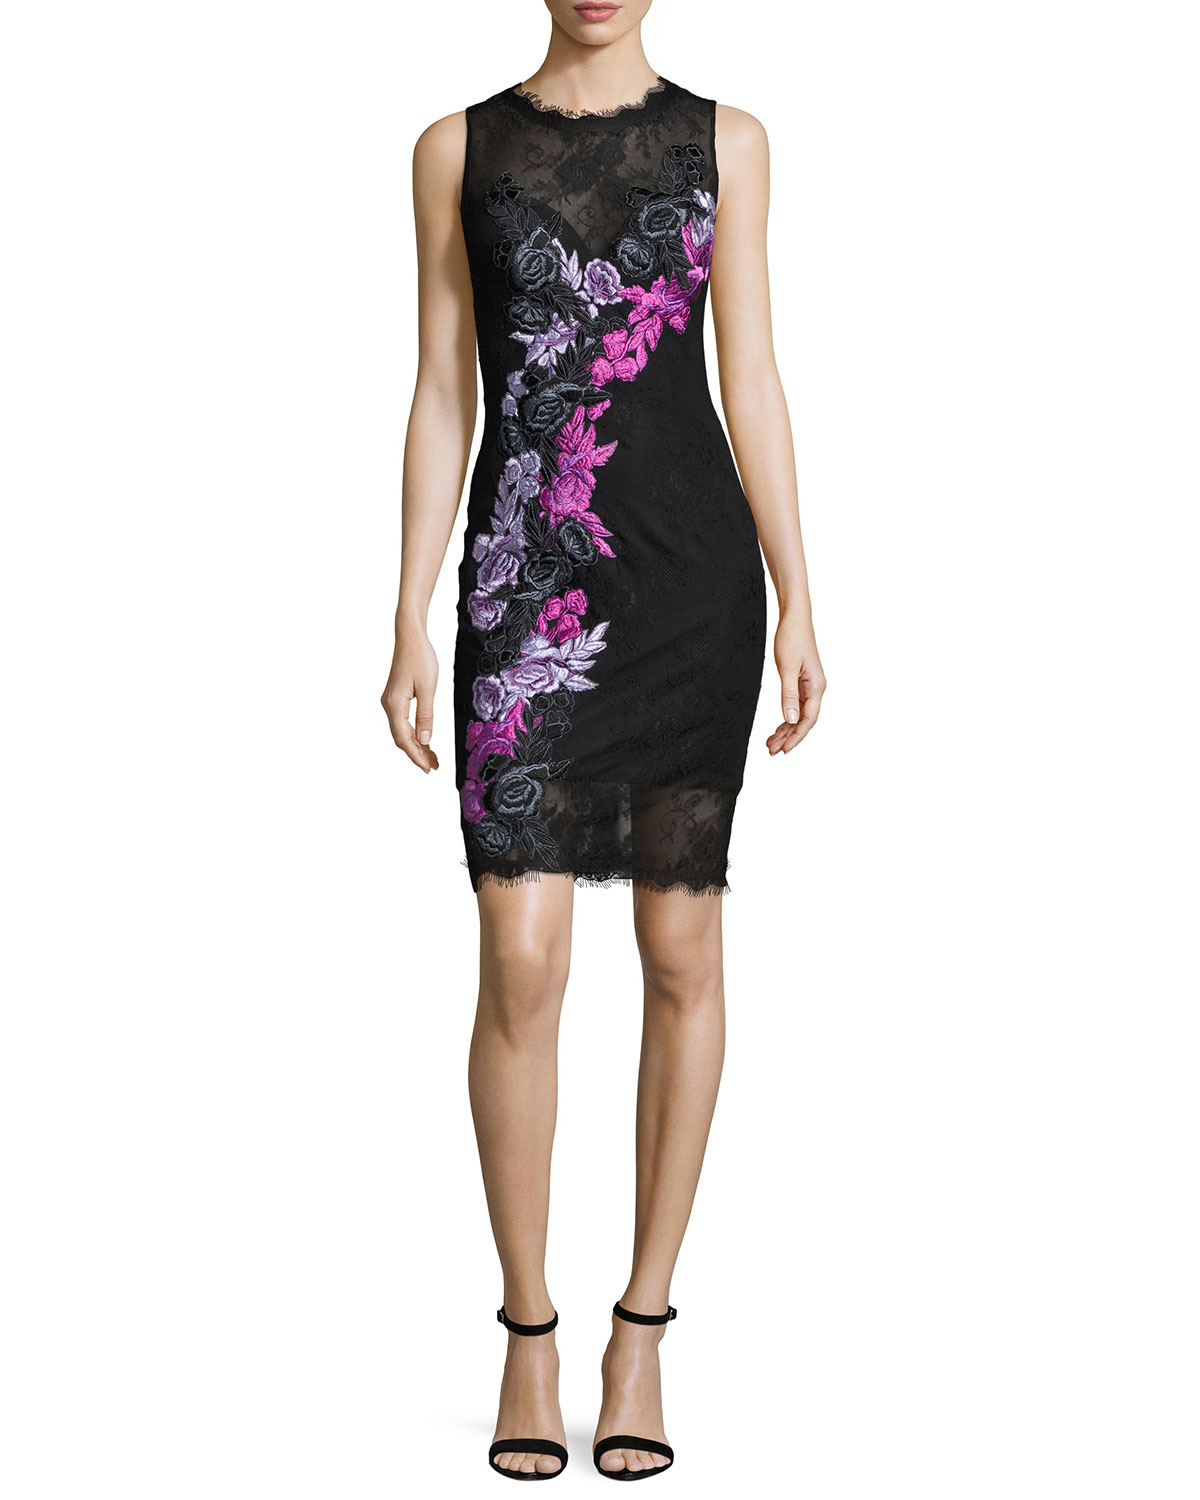 Sleeveless Floral Lace Cocktail Dress, Black